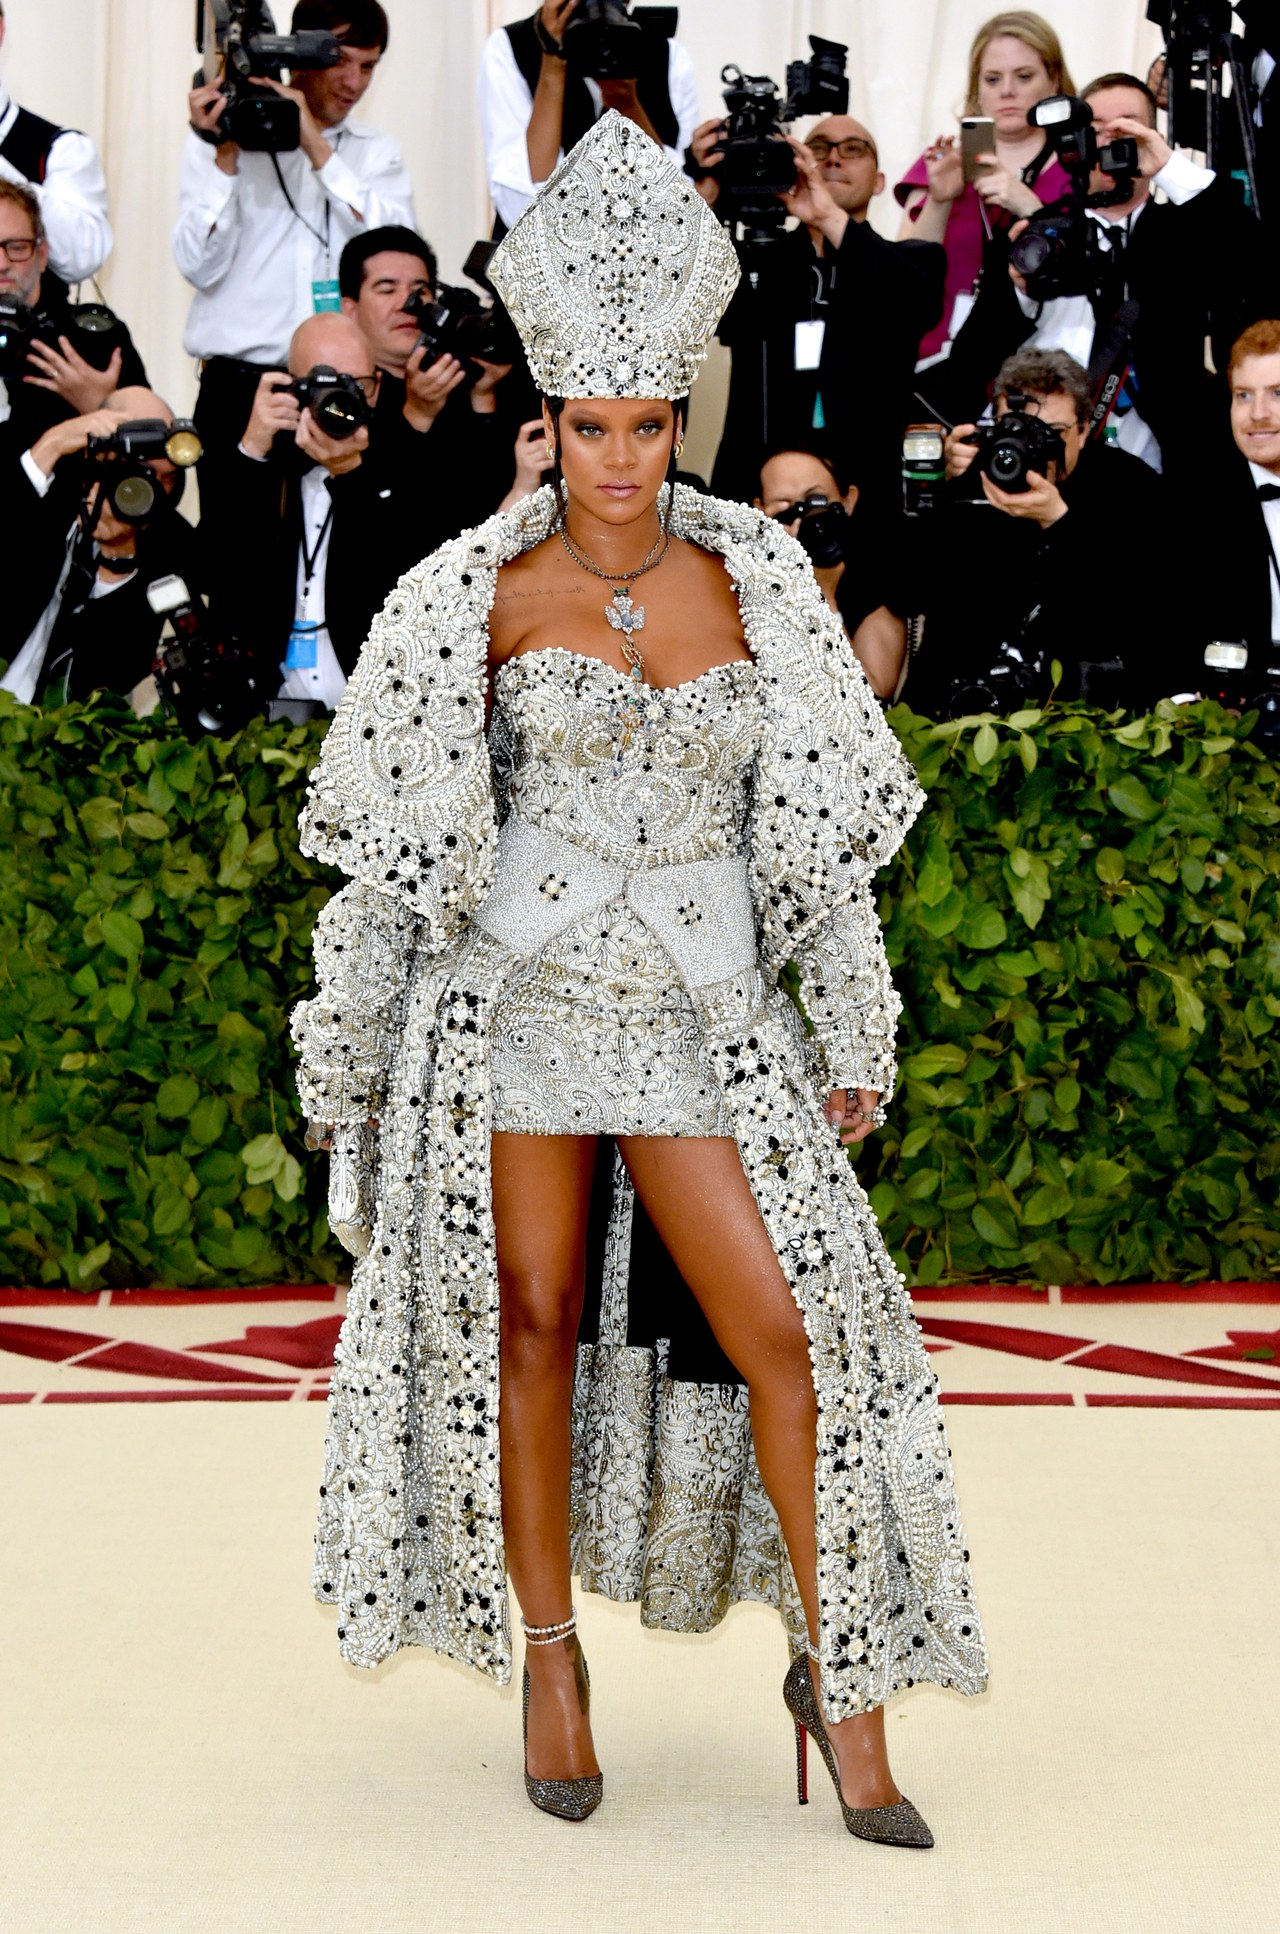 Met Gala 2018 The Best Looks from the Red Carpet 04 Met Gala 2018 Met Gala 2018: The Best Looks from the Red Carpet Met Gala 2018 The Best Looks from the Red Carpet 04